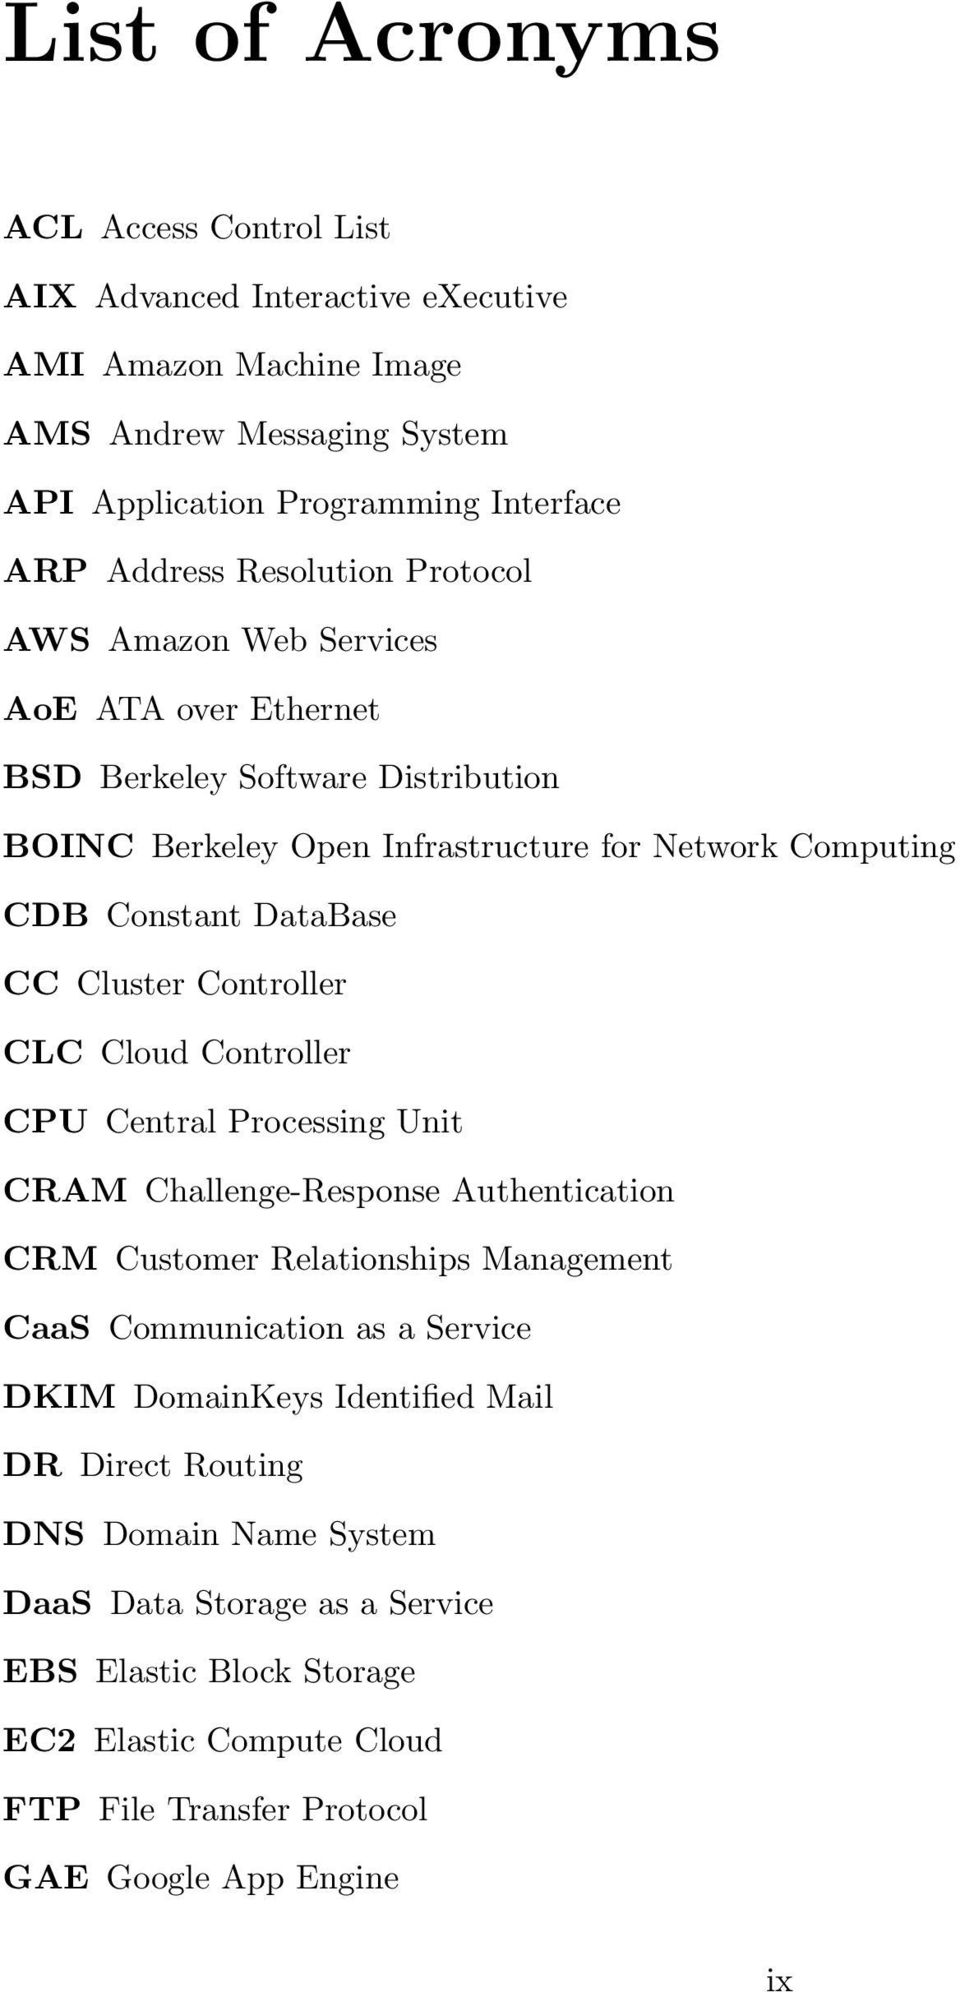 Cluster Controller CLC Cloud Controller CPU Central Processing Unit CRAM Challenge-Response Authentication CRM Customer Relationships Management CaaS Communication as a Service DKIM